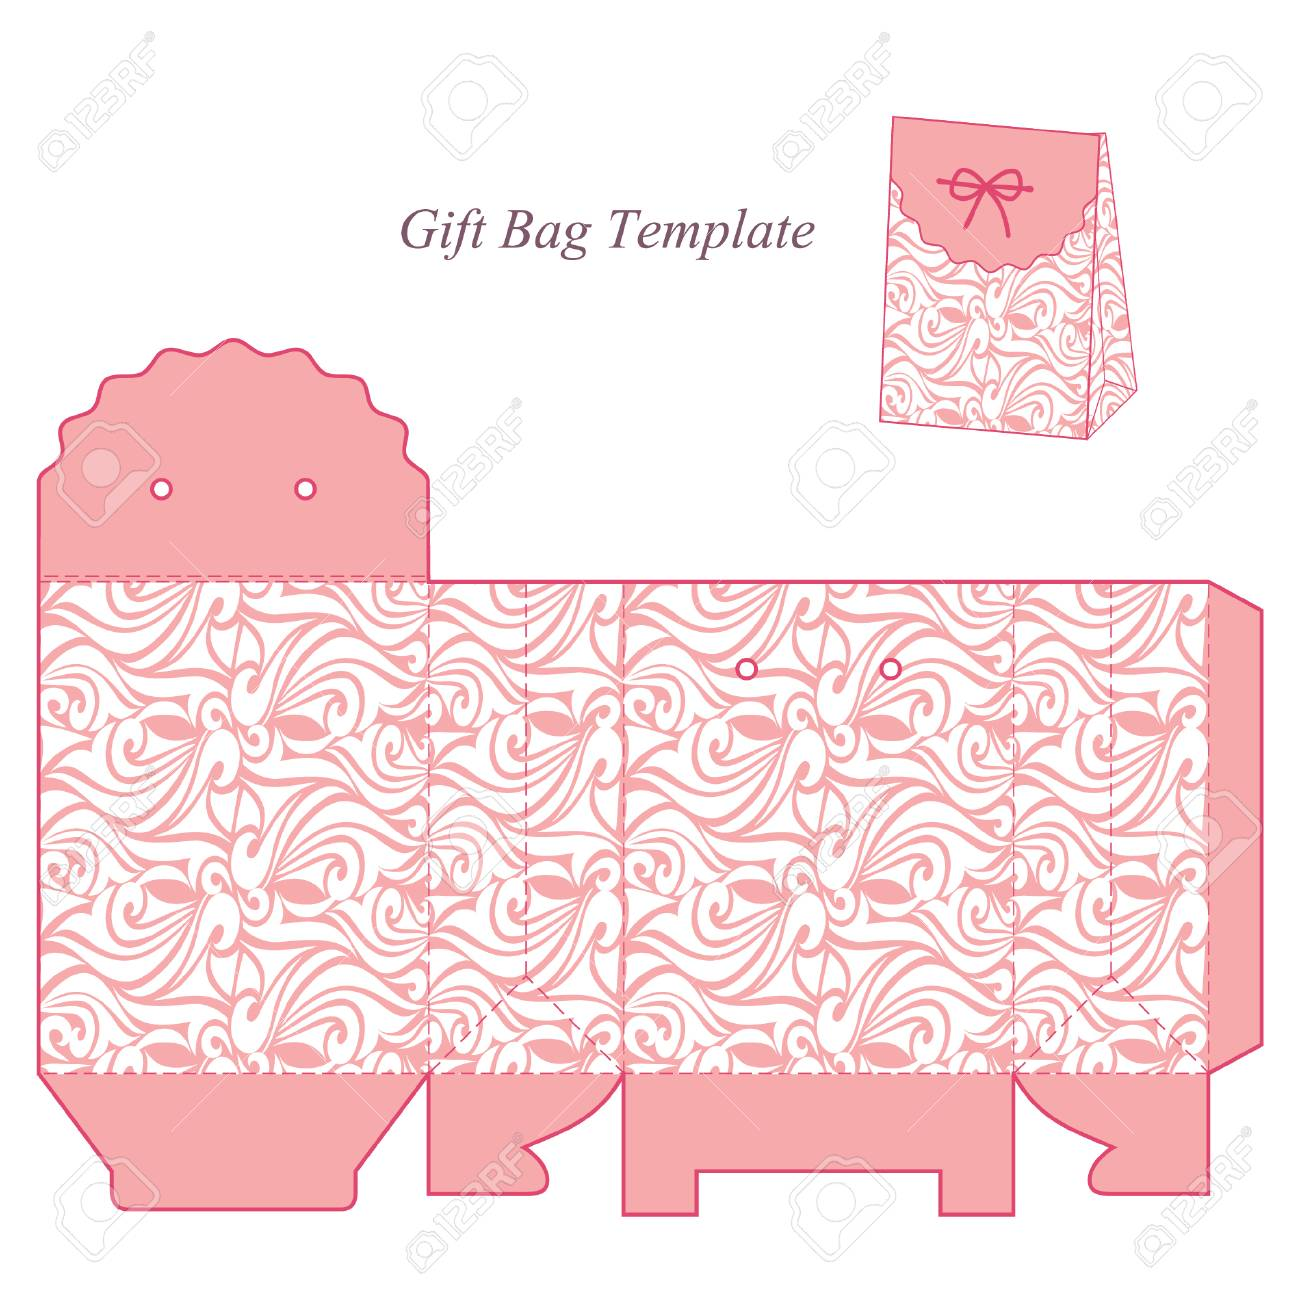 gift box template with lid pink with white pattern isolated